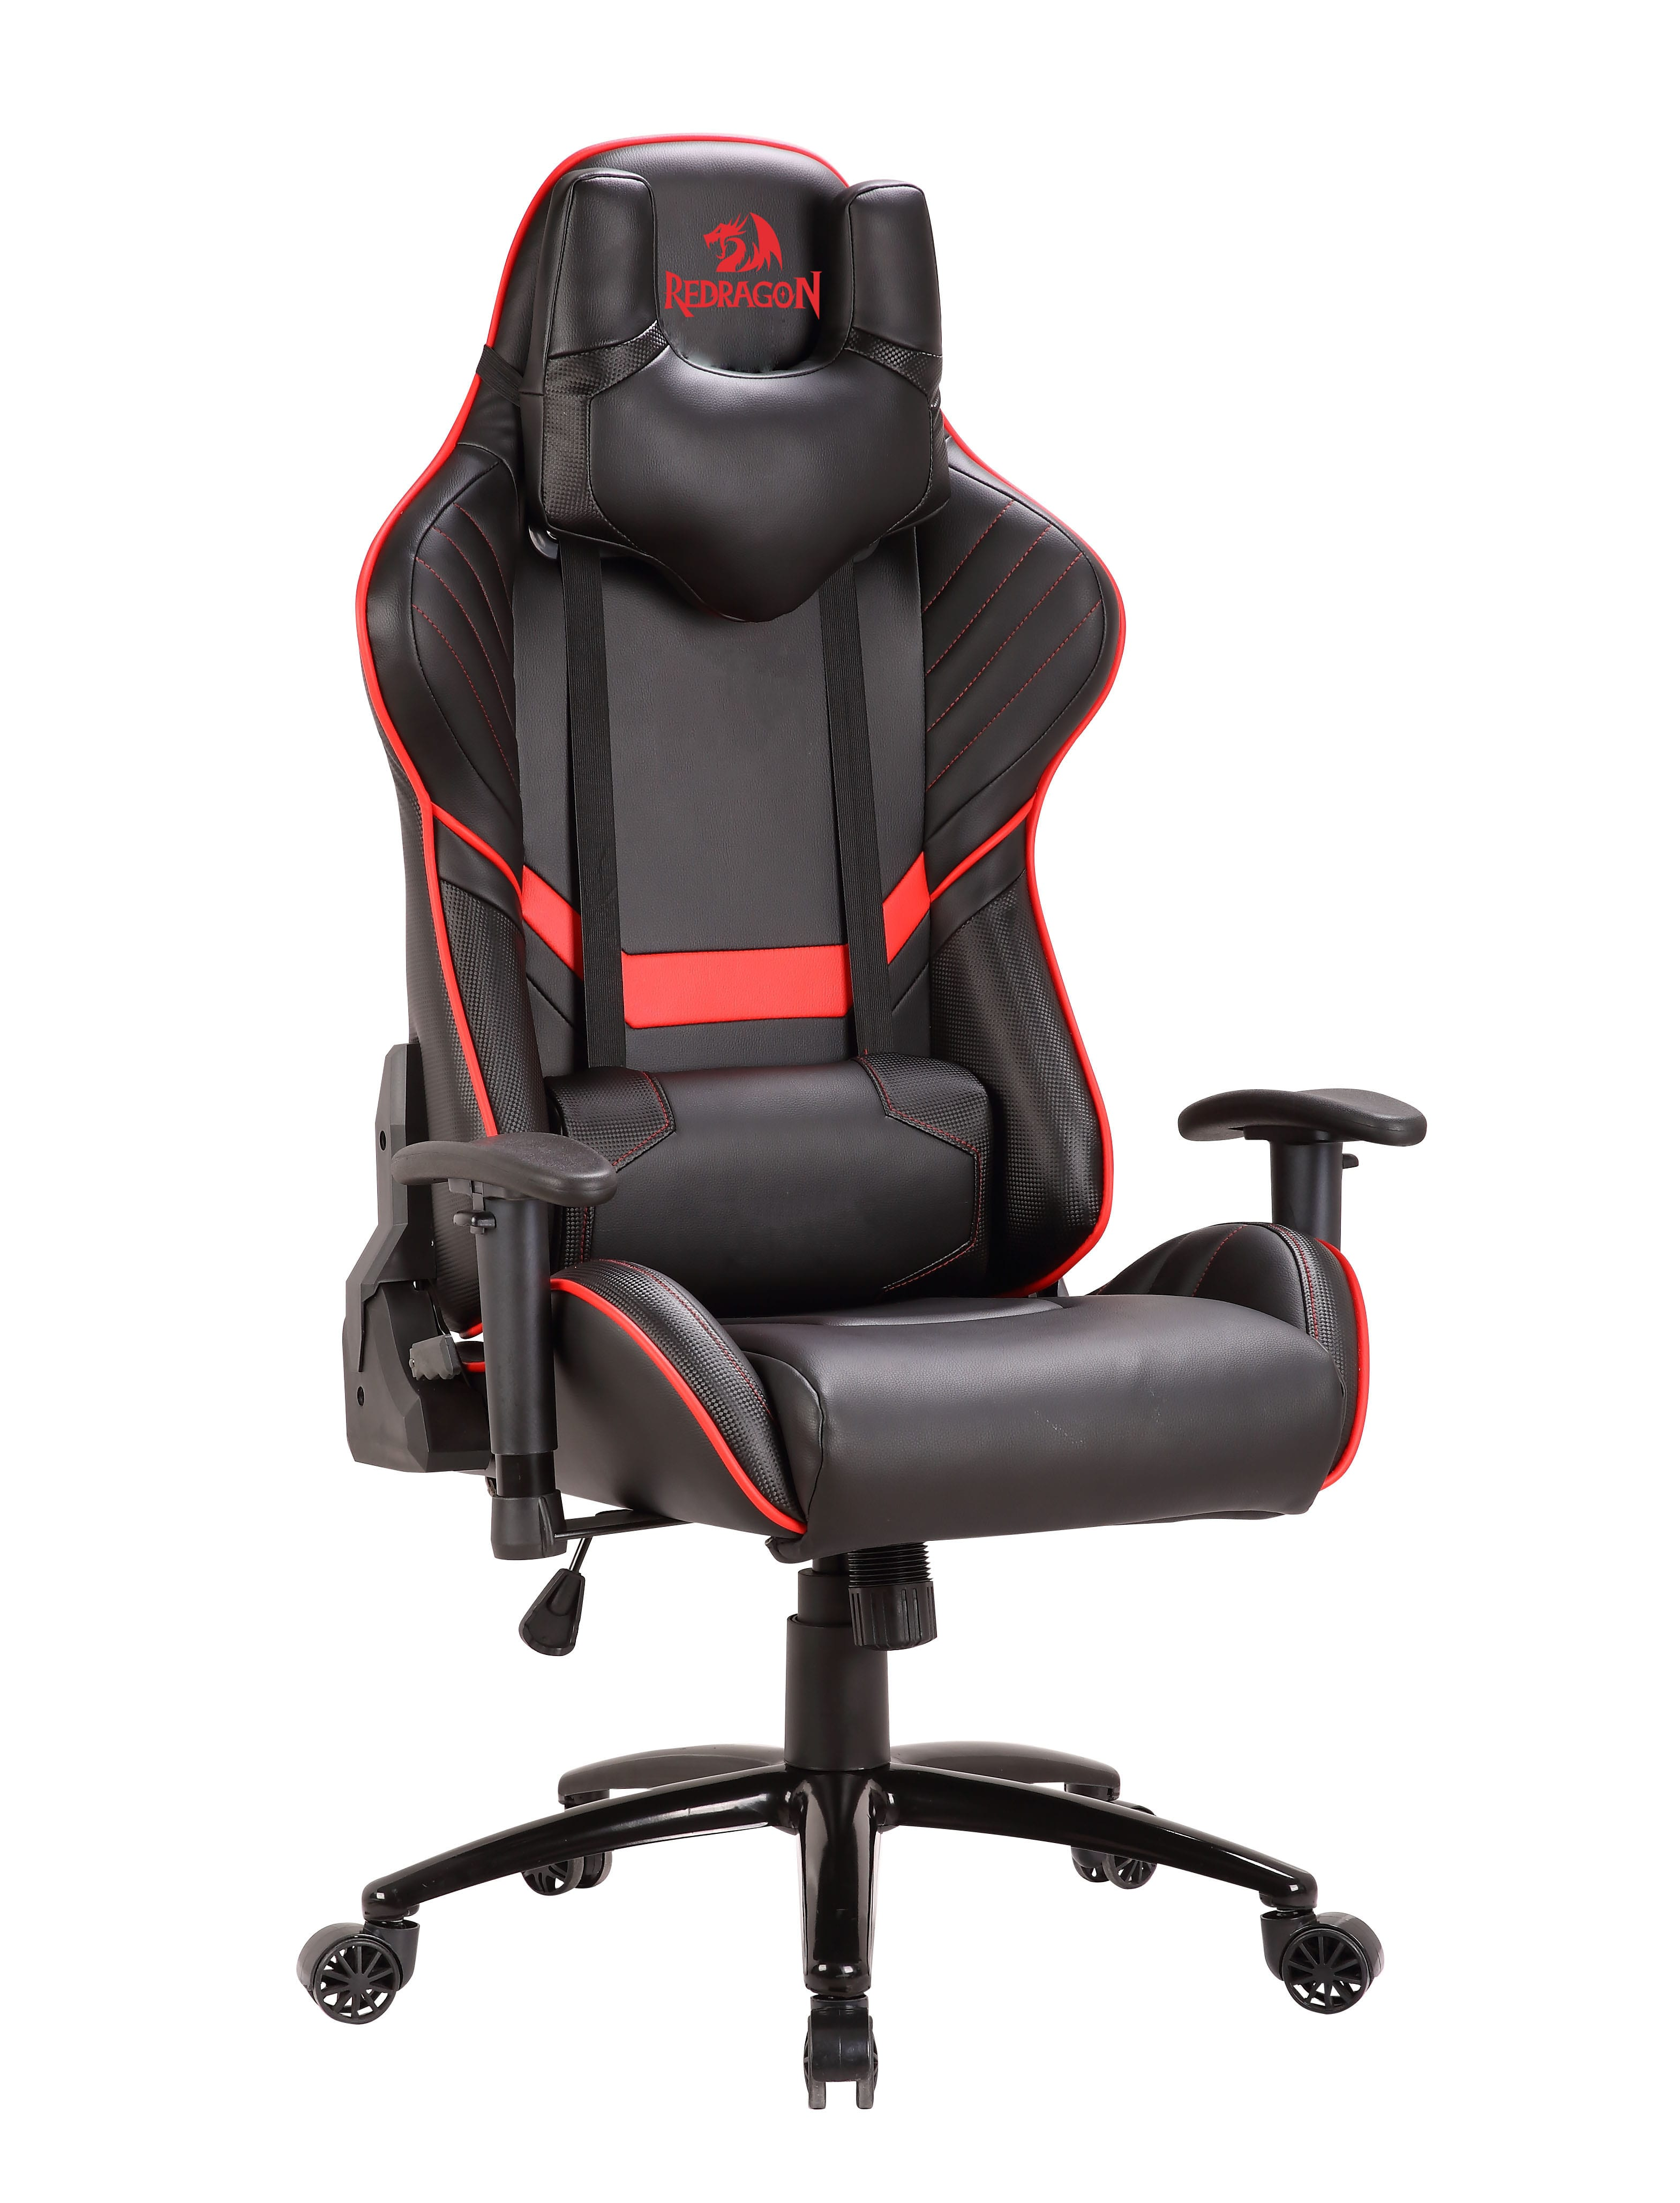 gaming chair companies office herman miller aeron redragon coeus black and red syntech